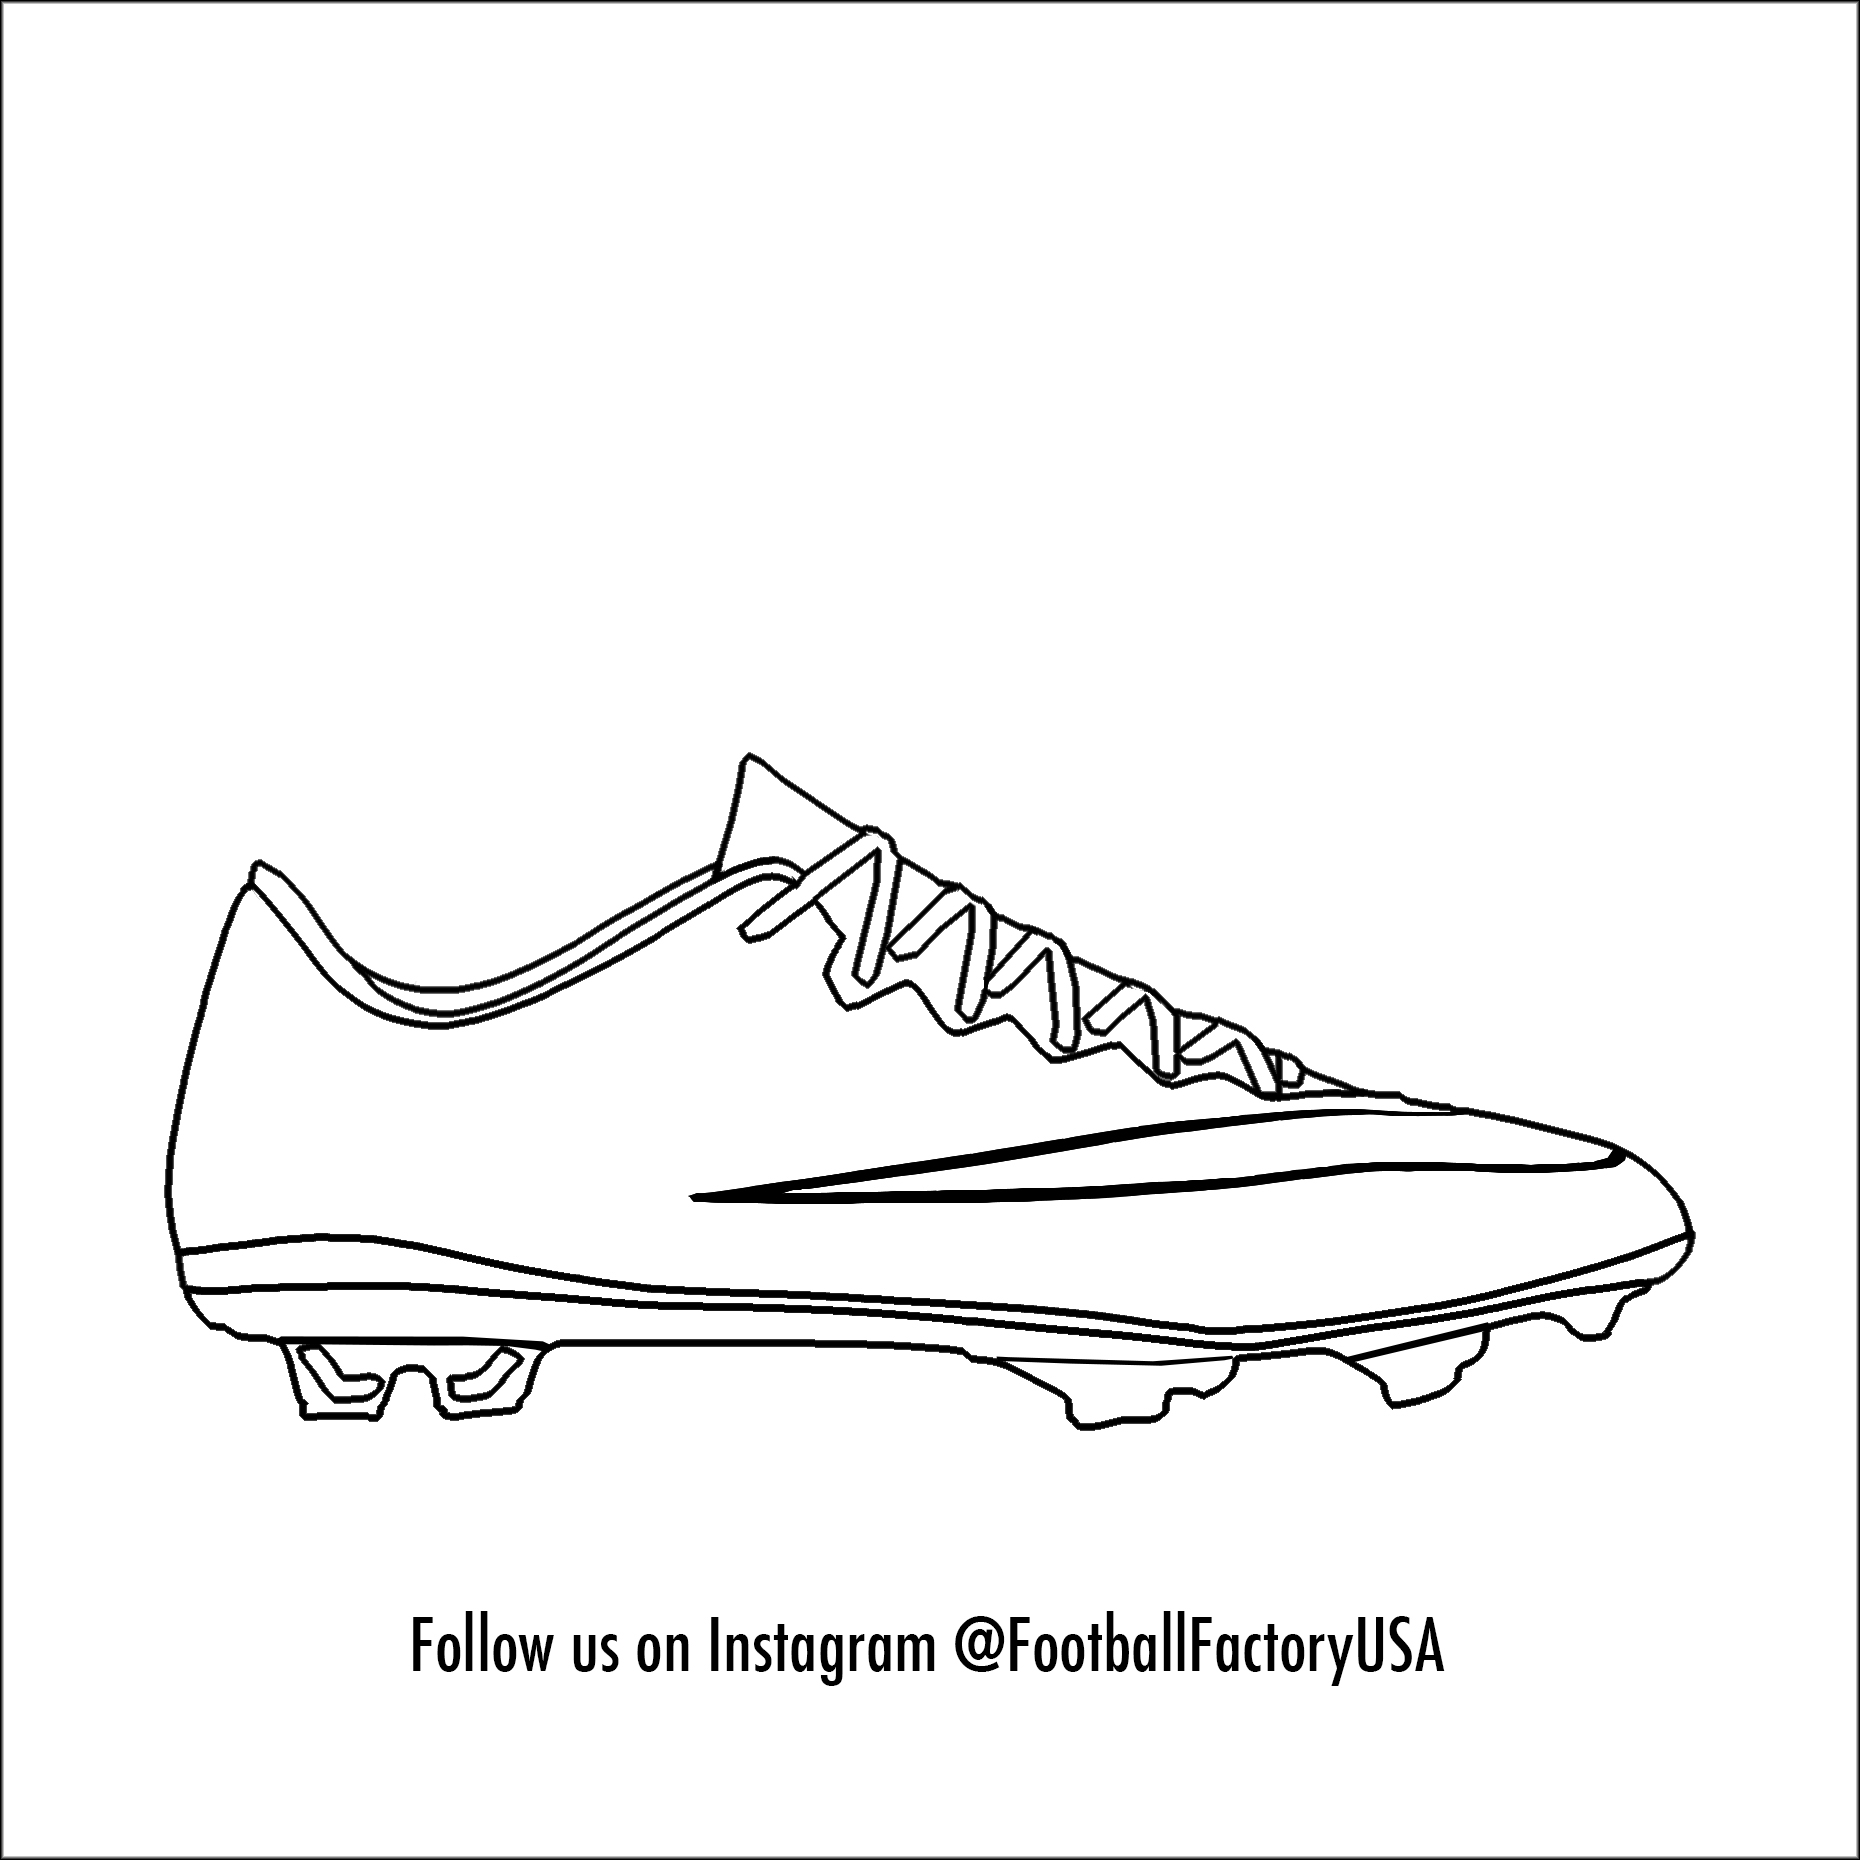 Soccer Cleat Drawing At GetDrawings.com